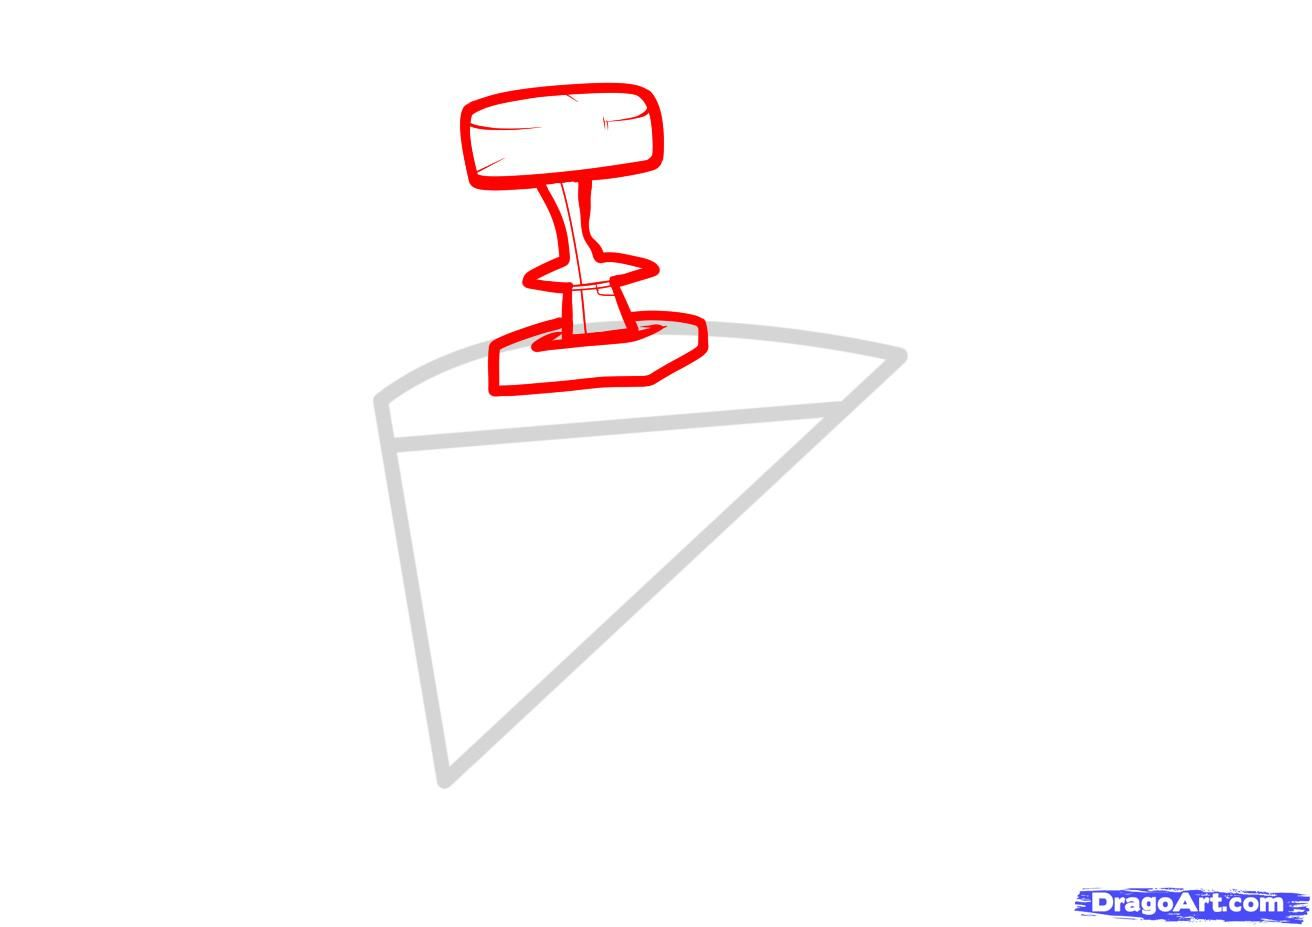 How to draw the Camaro car step by step 3